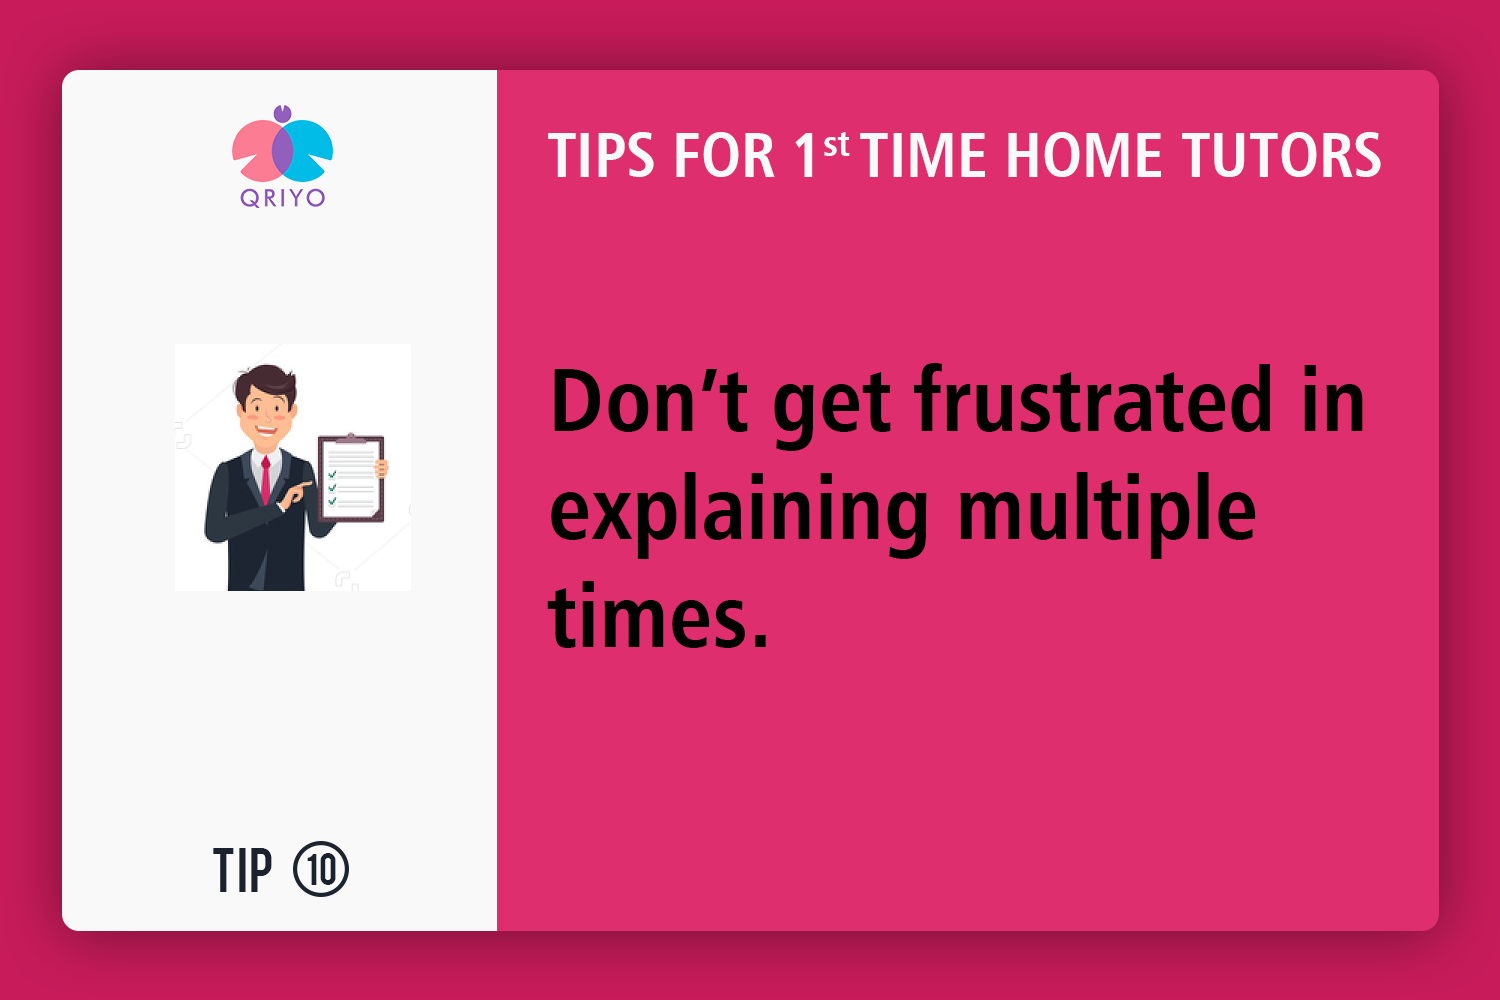 Don't get frustrated in explaining multiple times.